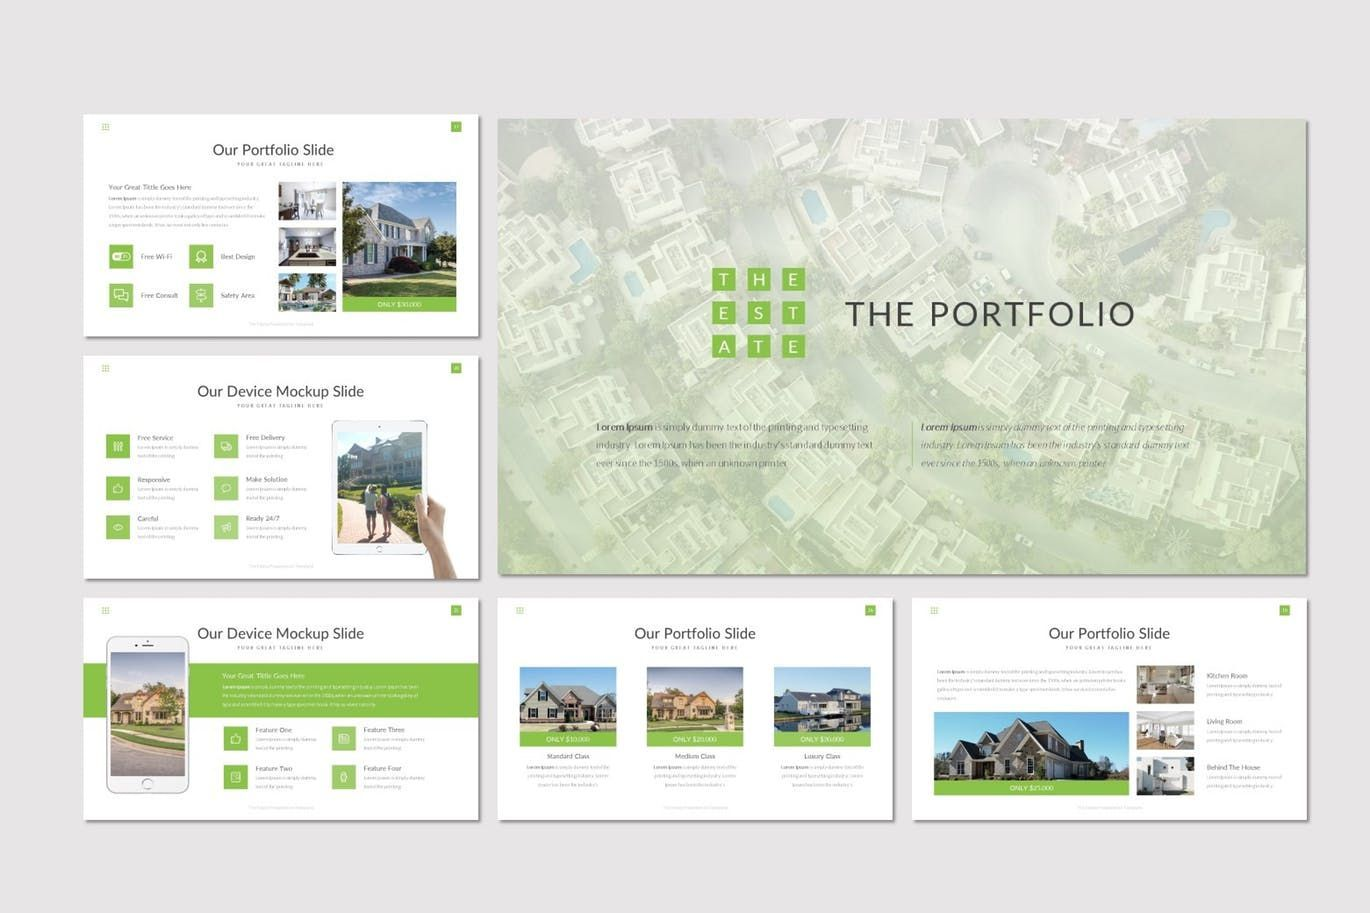 The Estate - PowerPoint Template, Slide 4, 07519, Presentation Templates — PoweredTemplate.com